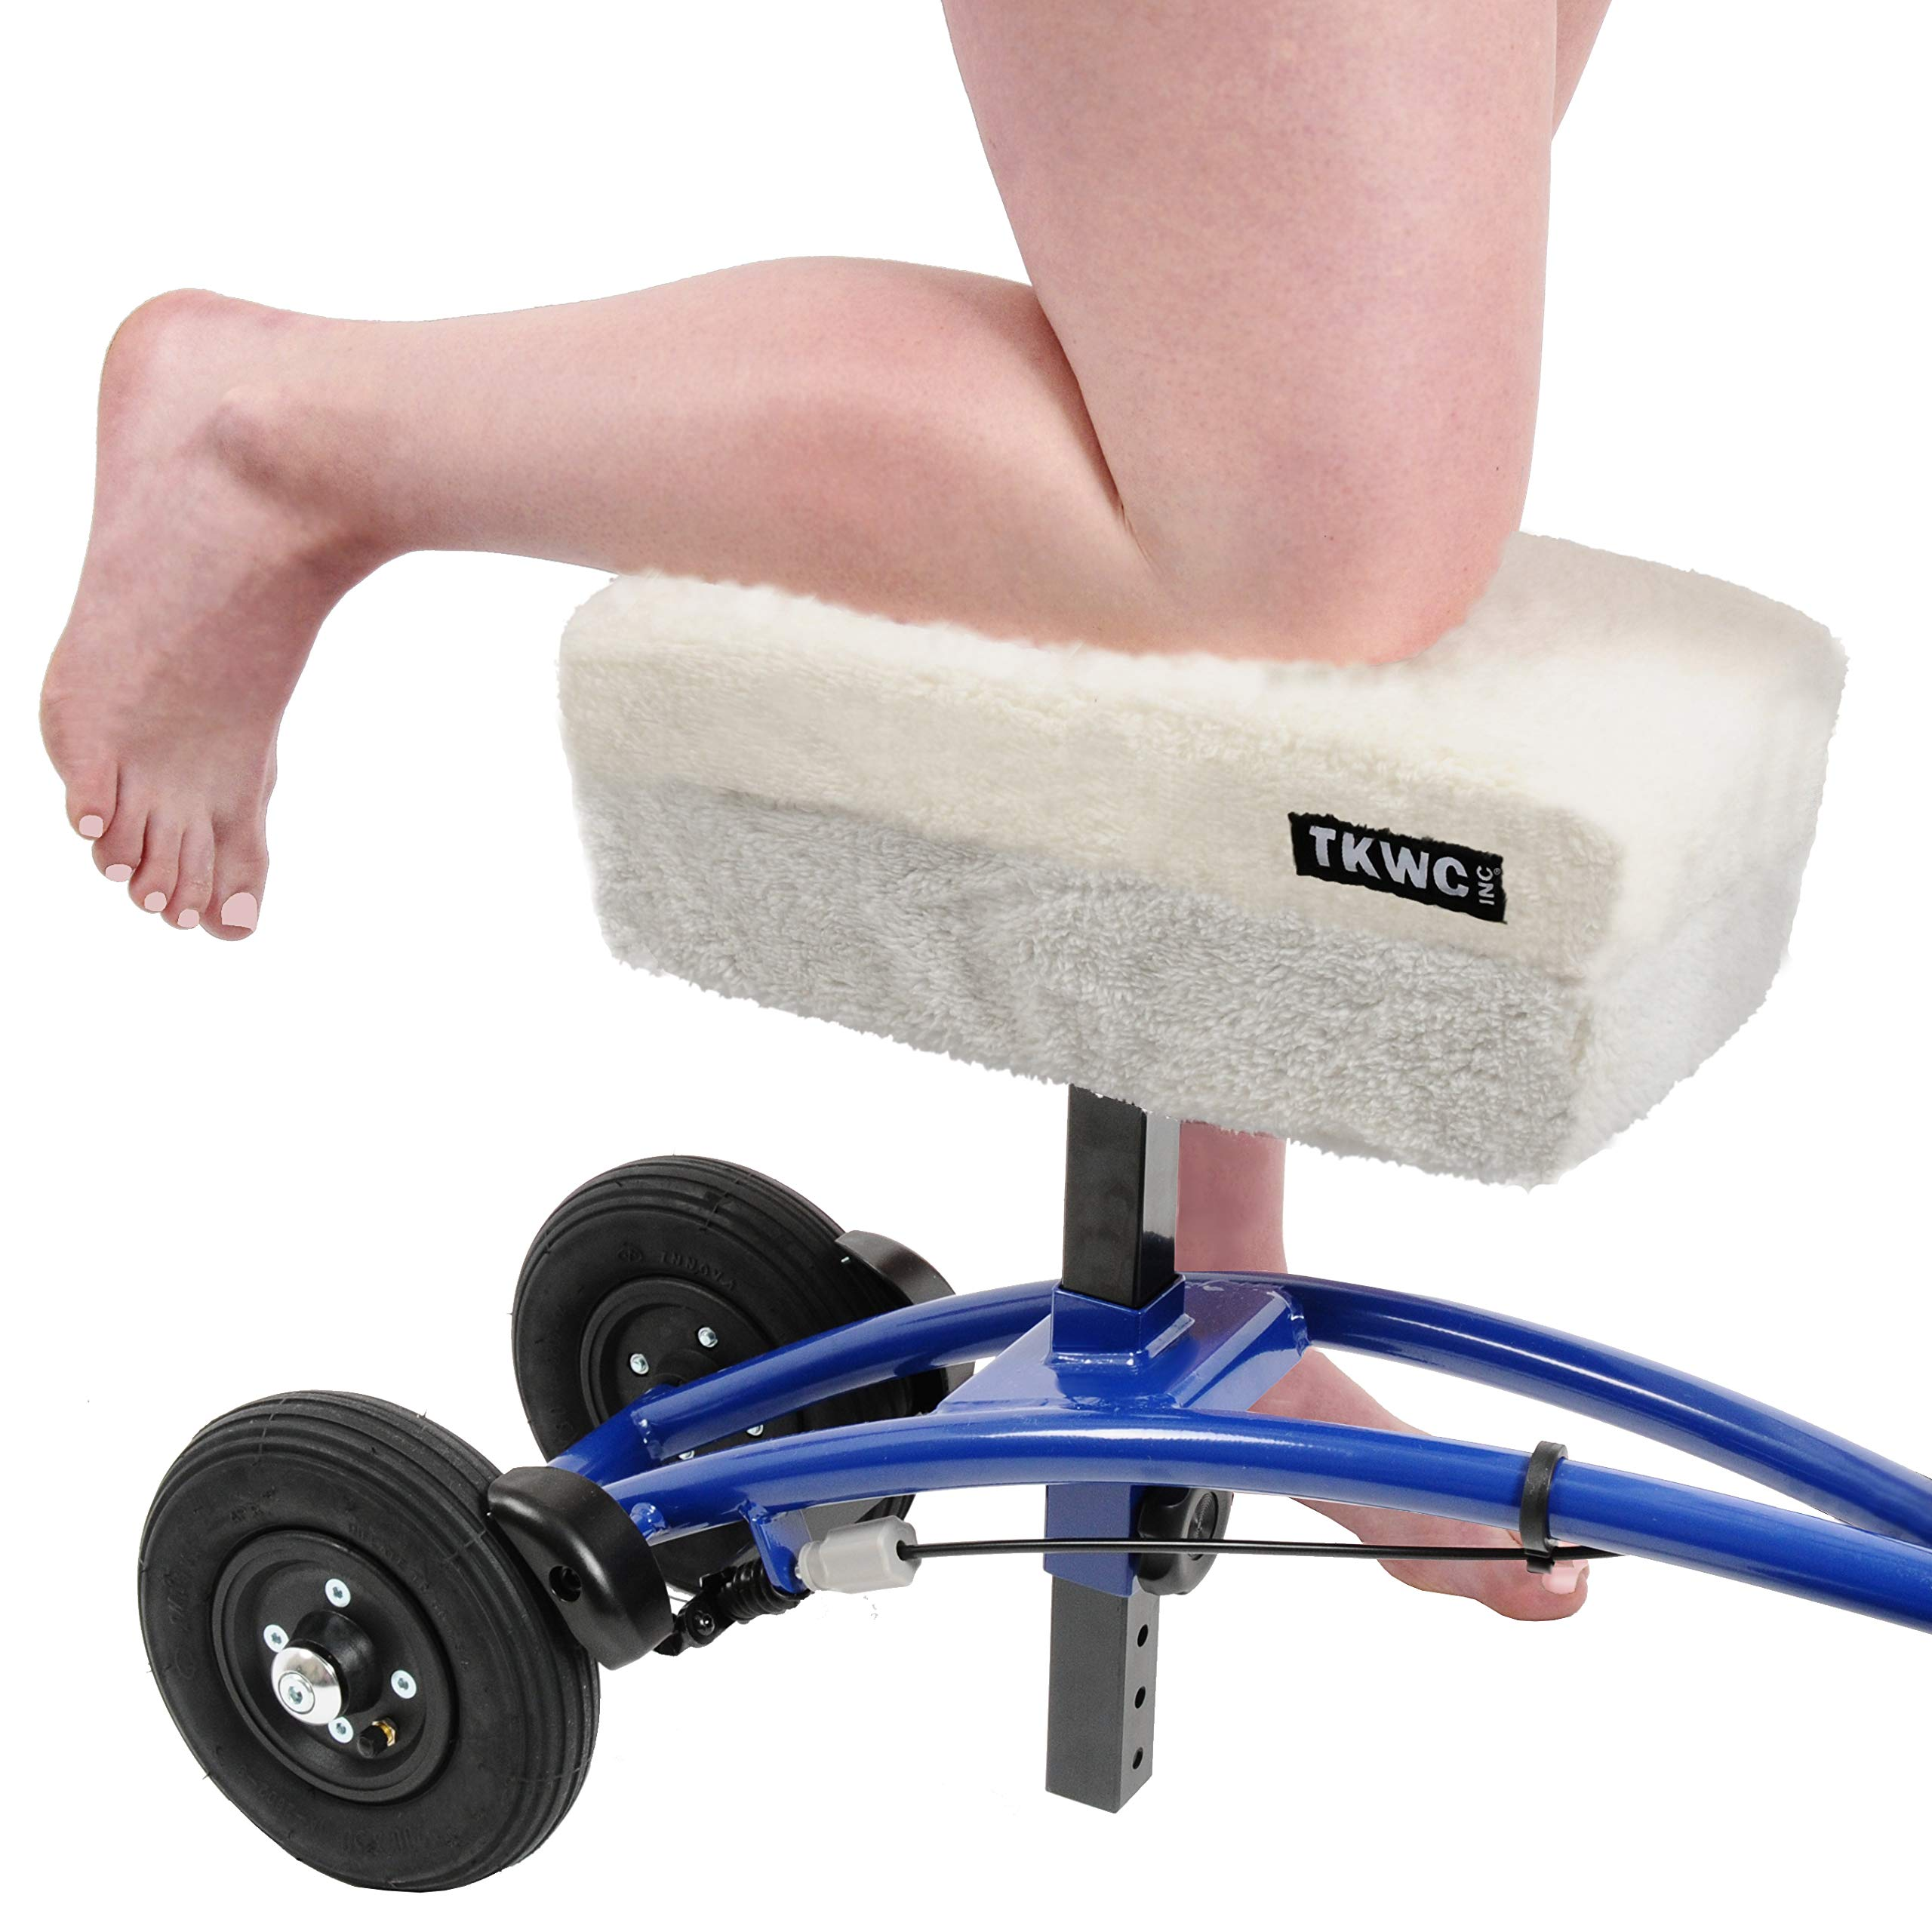 Knee Scooter Comfy Cushion by TKWC INC - Two Inch Thick Foam Knee Pad and Cover - Fits Most Knee Walker Models by TKWC INC